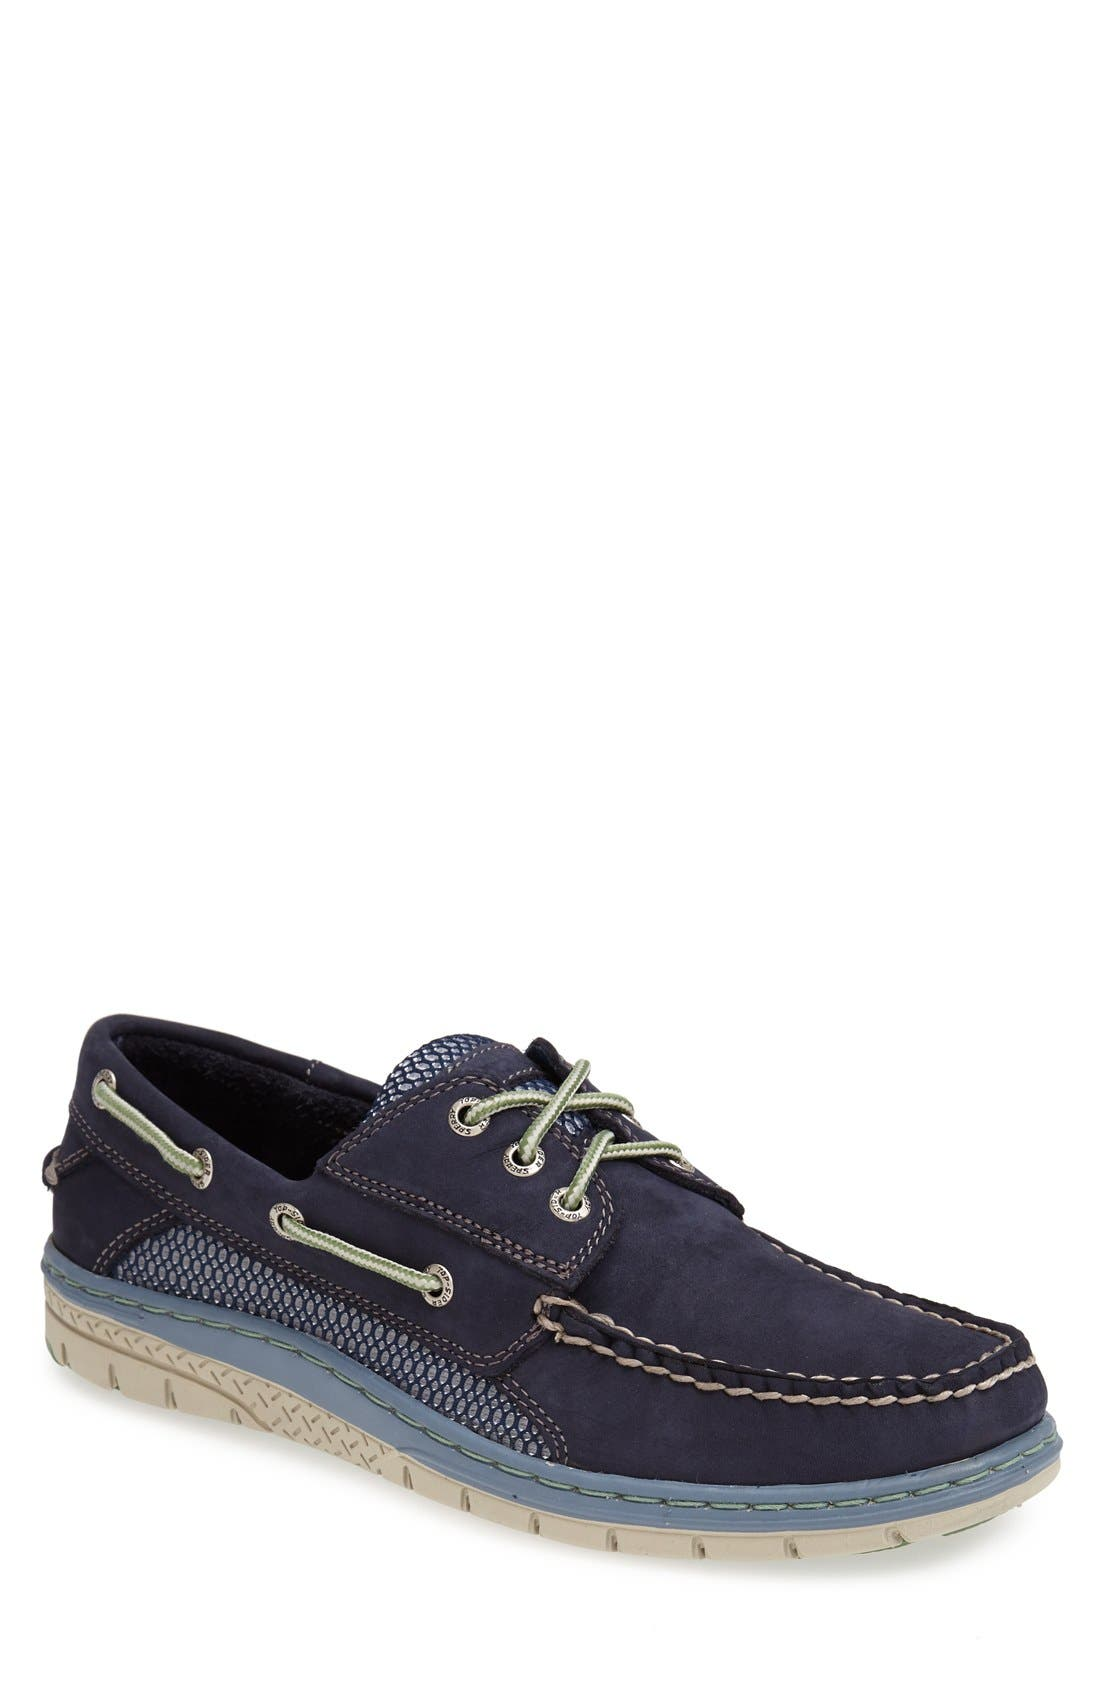 'Billfish Ultralite' Boat Shoe,                             Main thumbnail 18, color,